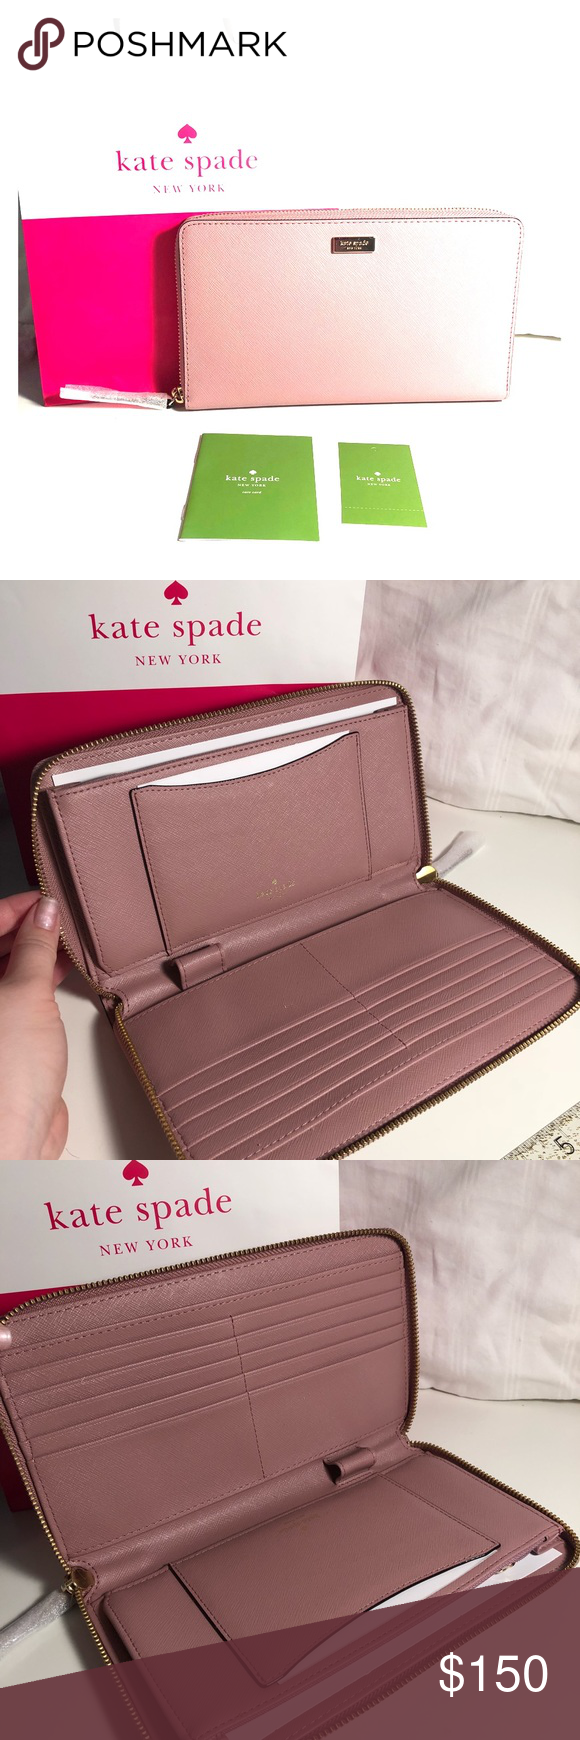 6f809cfccd2a Kate spade pink travel wallet laurel way kaden For stashing your ...